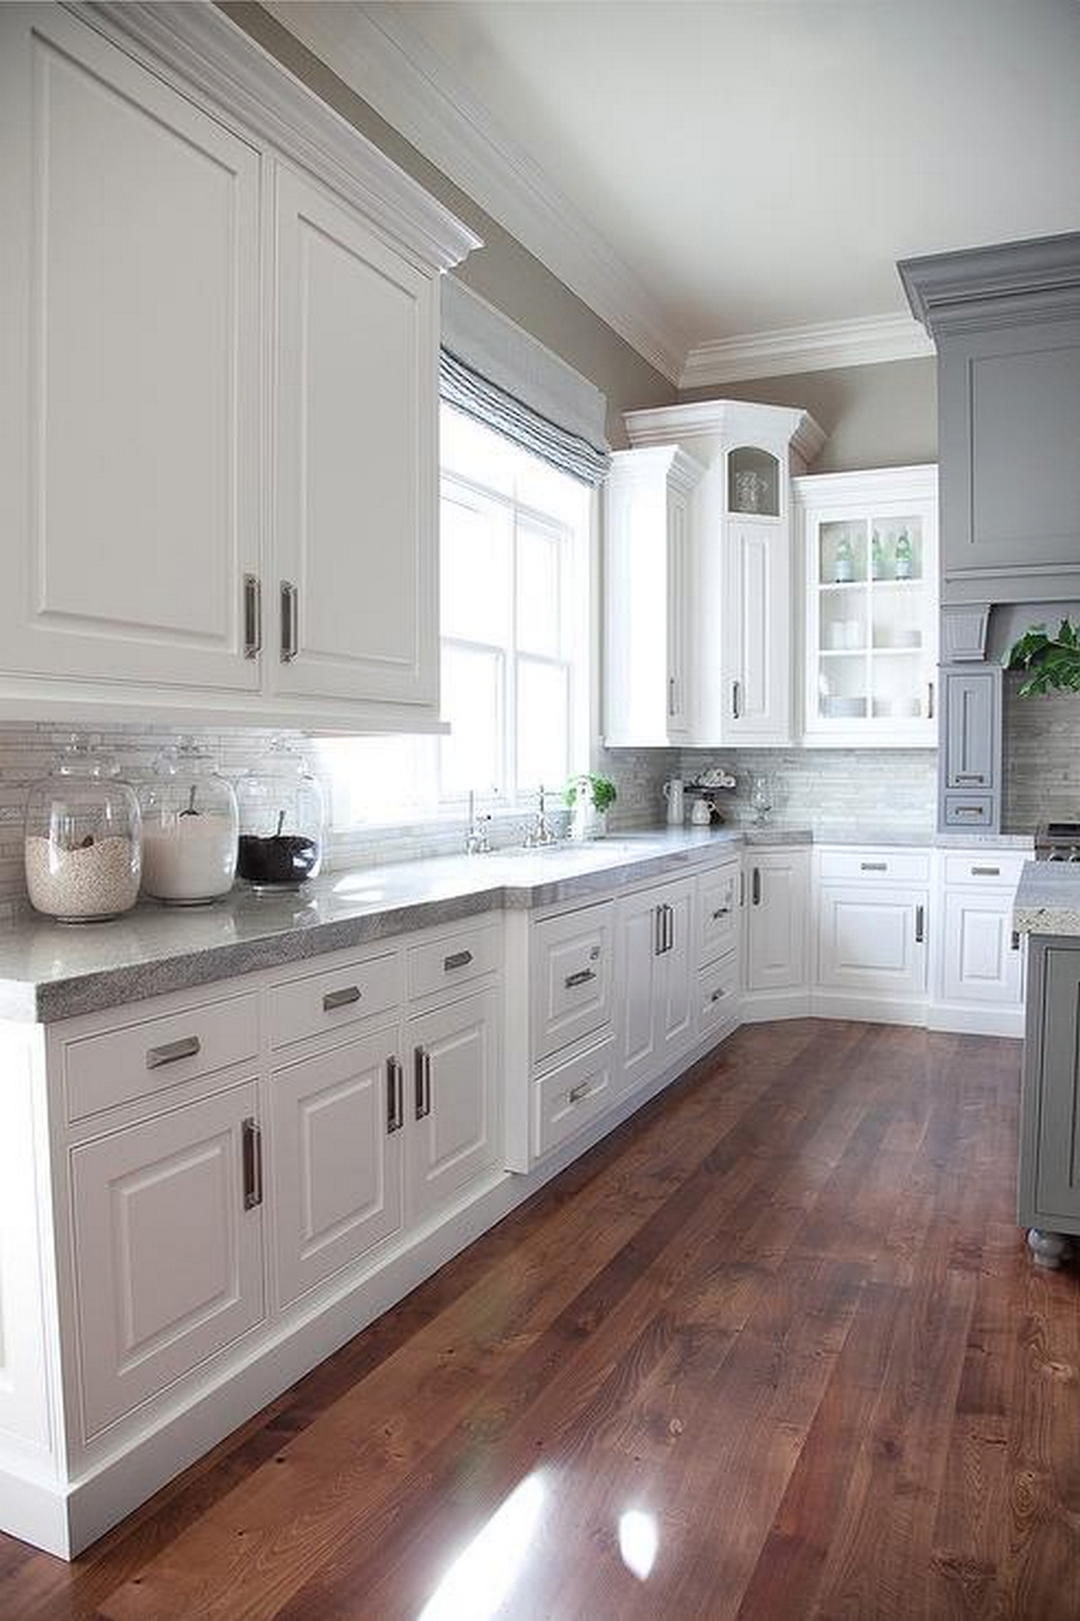 Kitchen Cabinet Remodel Ideas: Why White Kitchen Interior Is Still Great For 2019